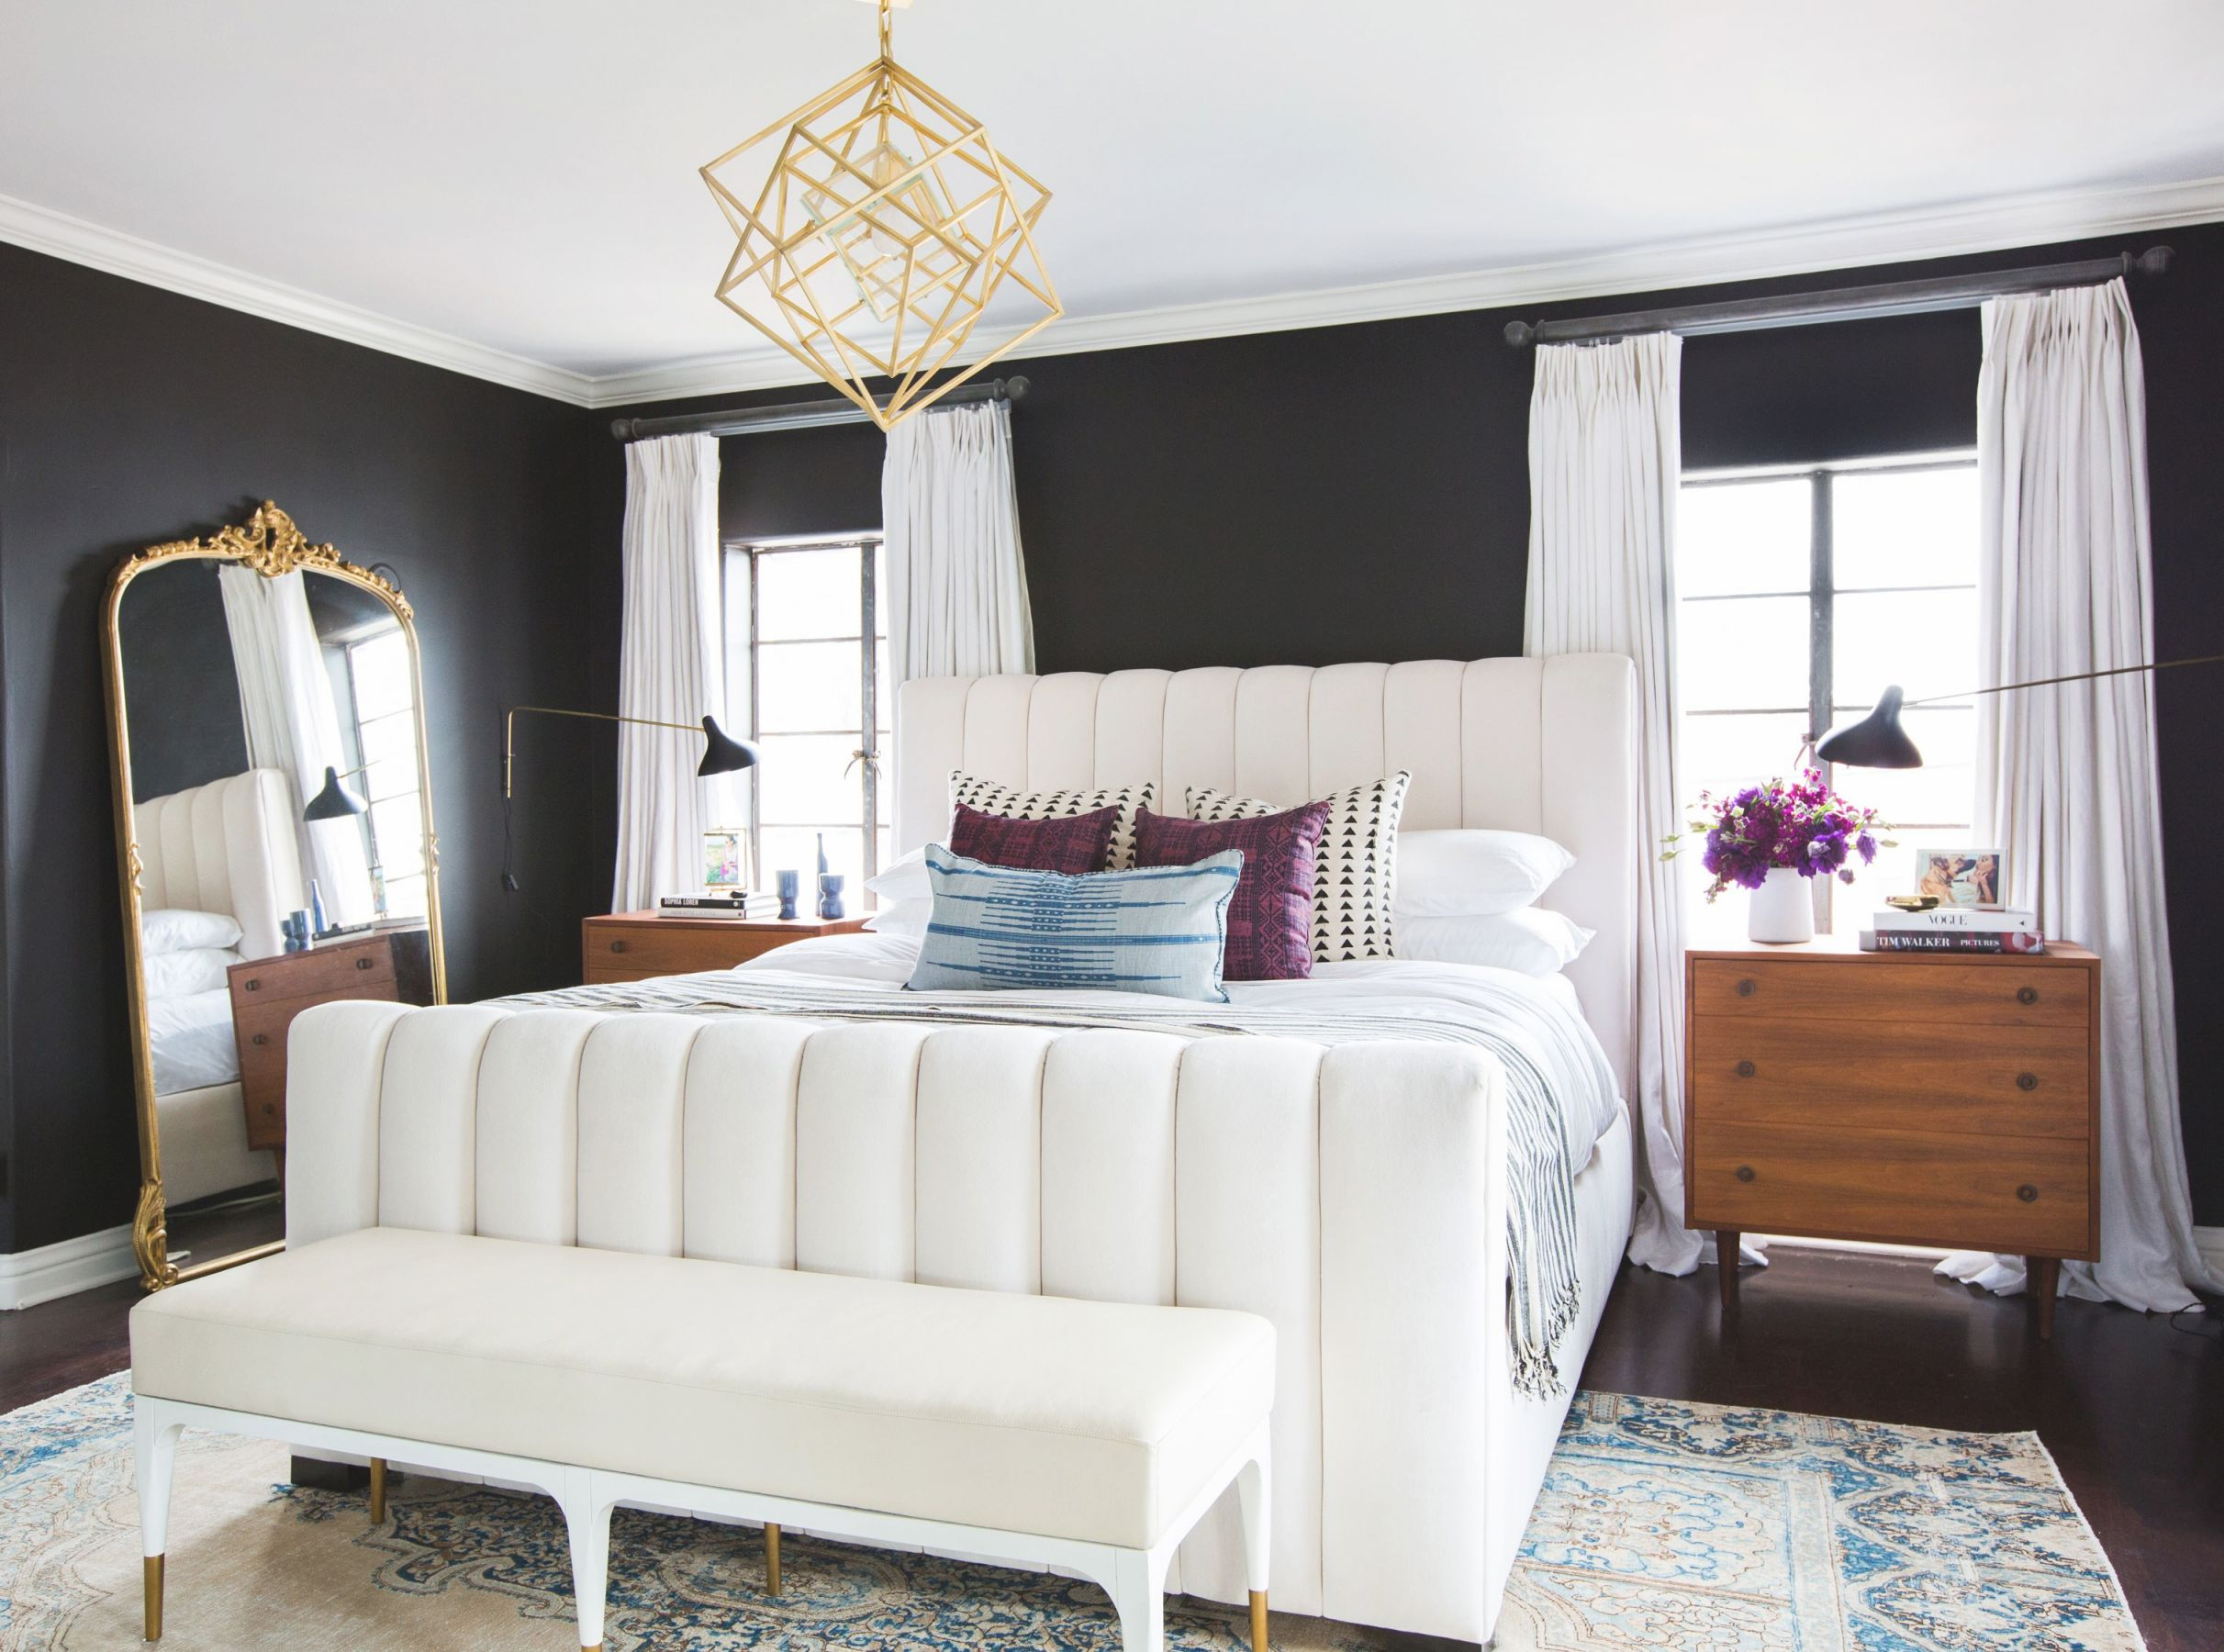 15 Master Bedroom Decorating Ideas And Design Inspiration intended for Unique Home Decor Ideas For Master Bedroom